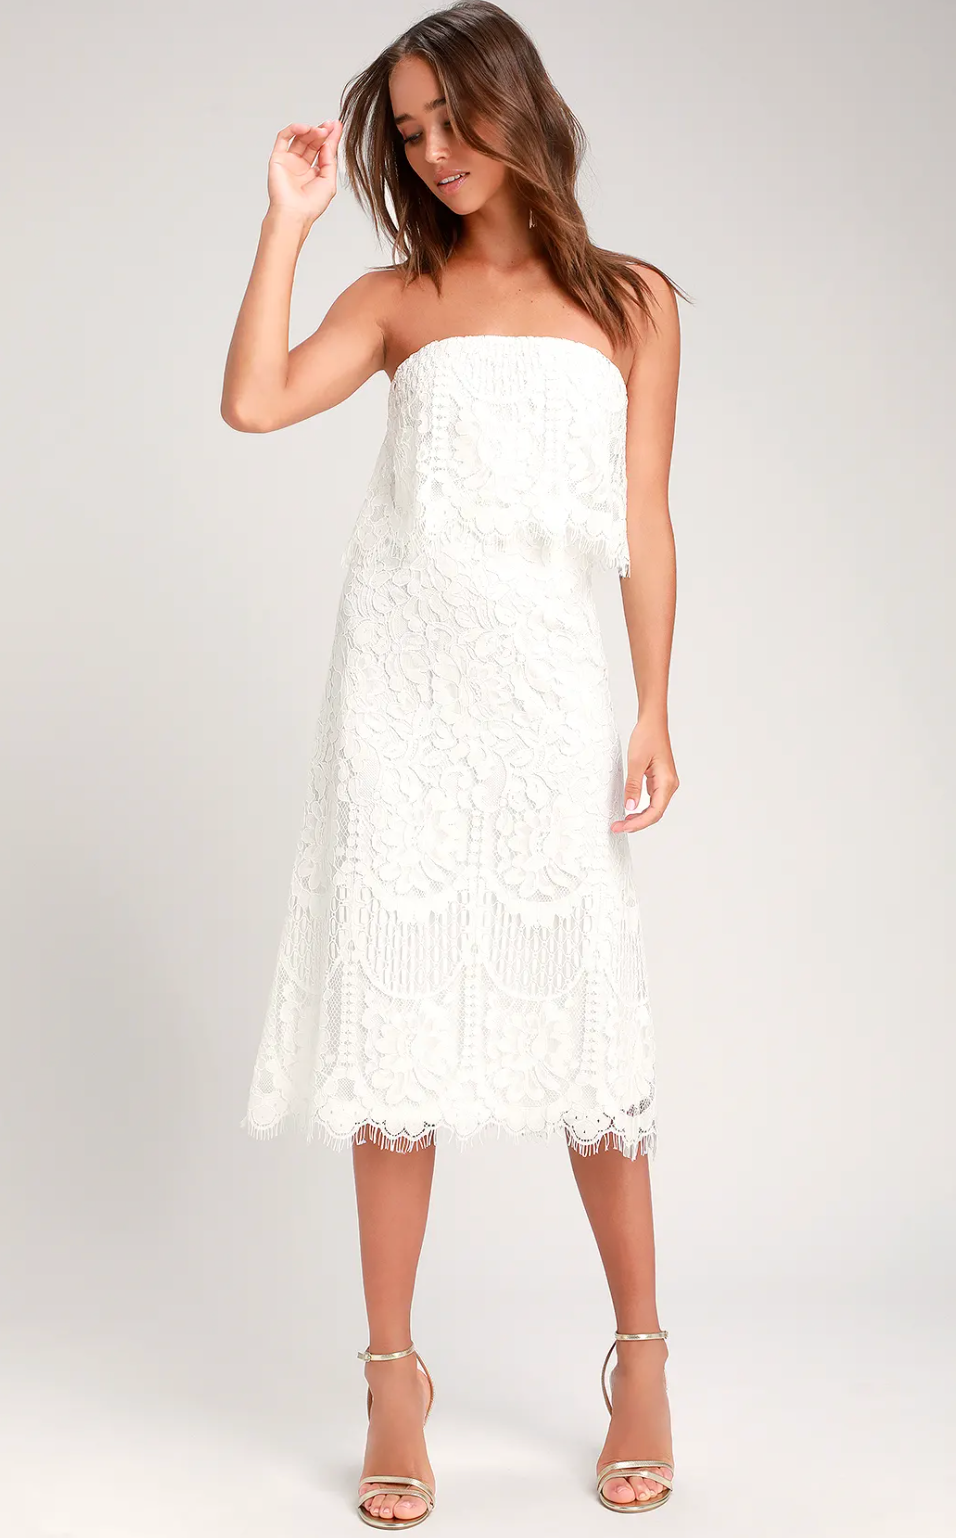 White lace strapless midi dress from Lulu's